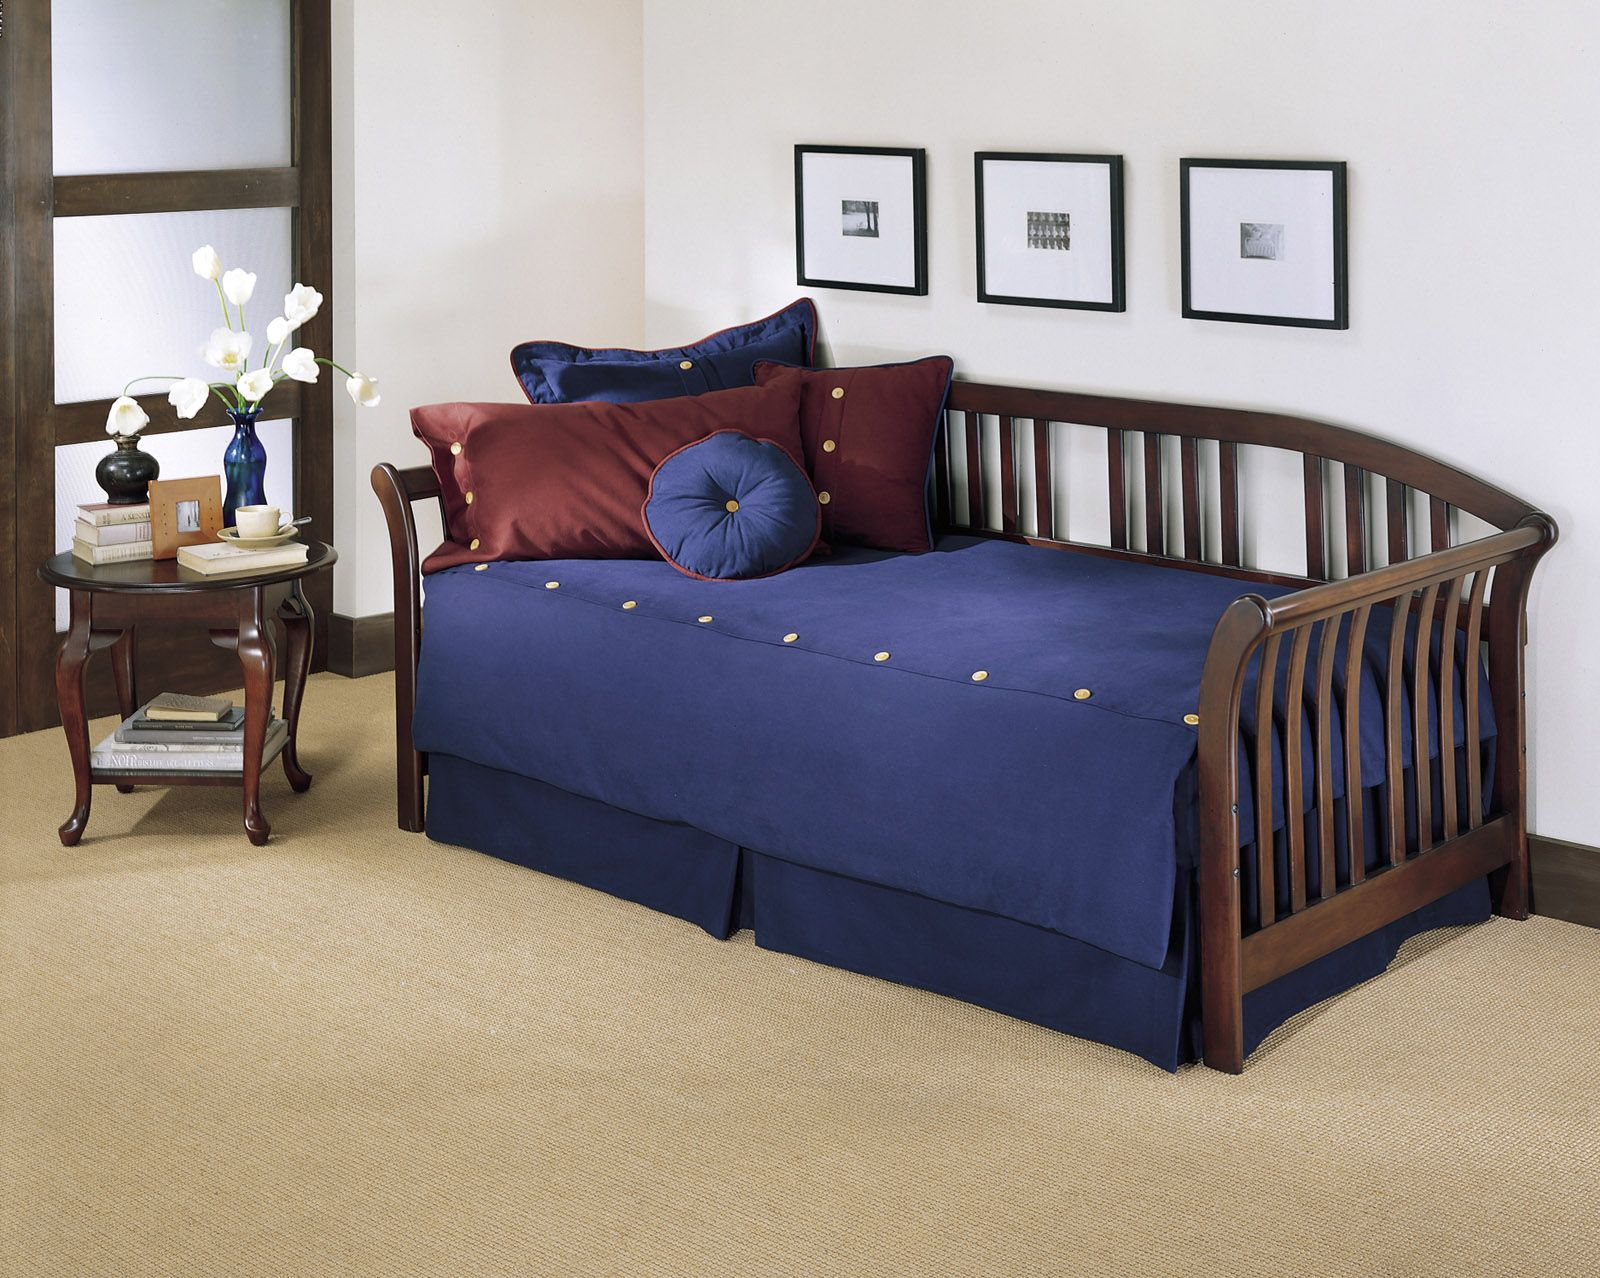 Daybed bedding fashion bed group headboards u fbg wood and metal